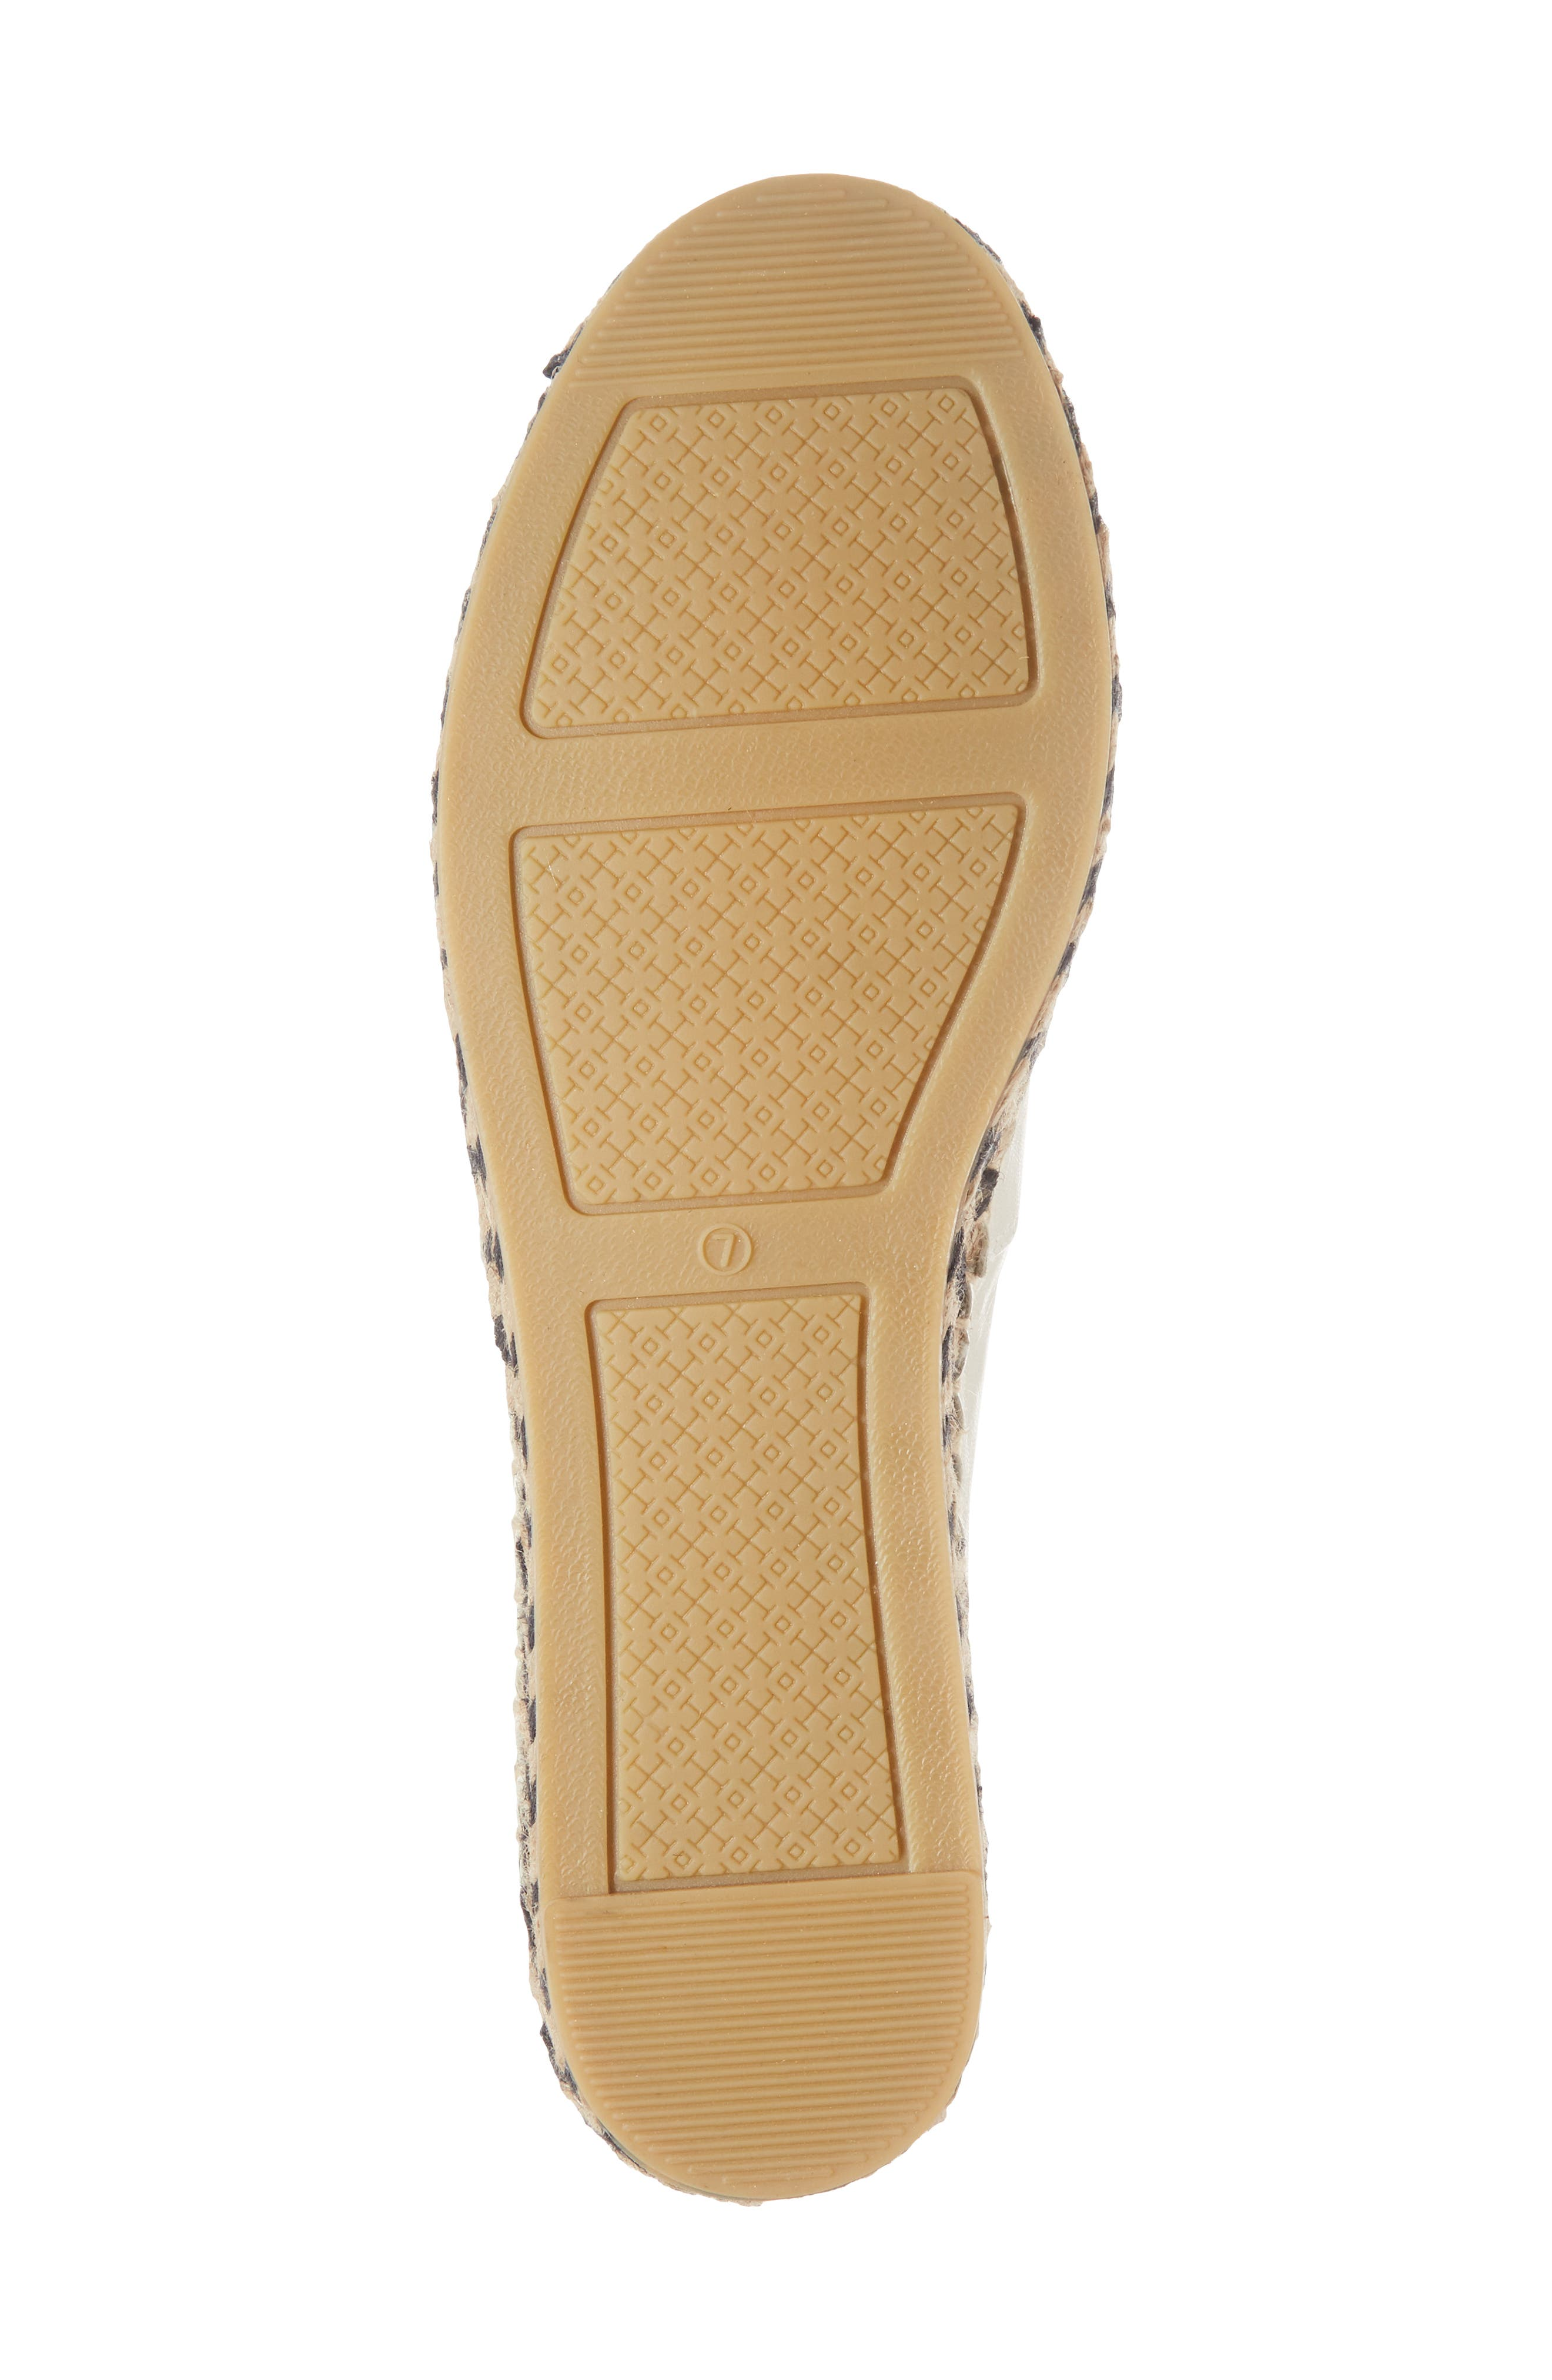 TORY BURCH, Colorblock Platform Espadrille, Alternate thumbnail 6, color, PERFECT IVORY/ PERFECT BLACK